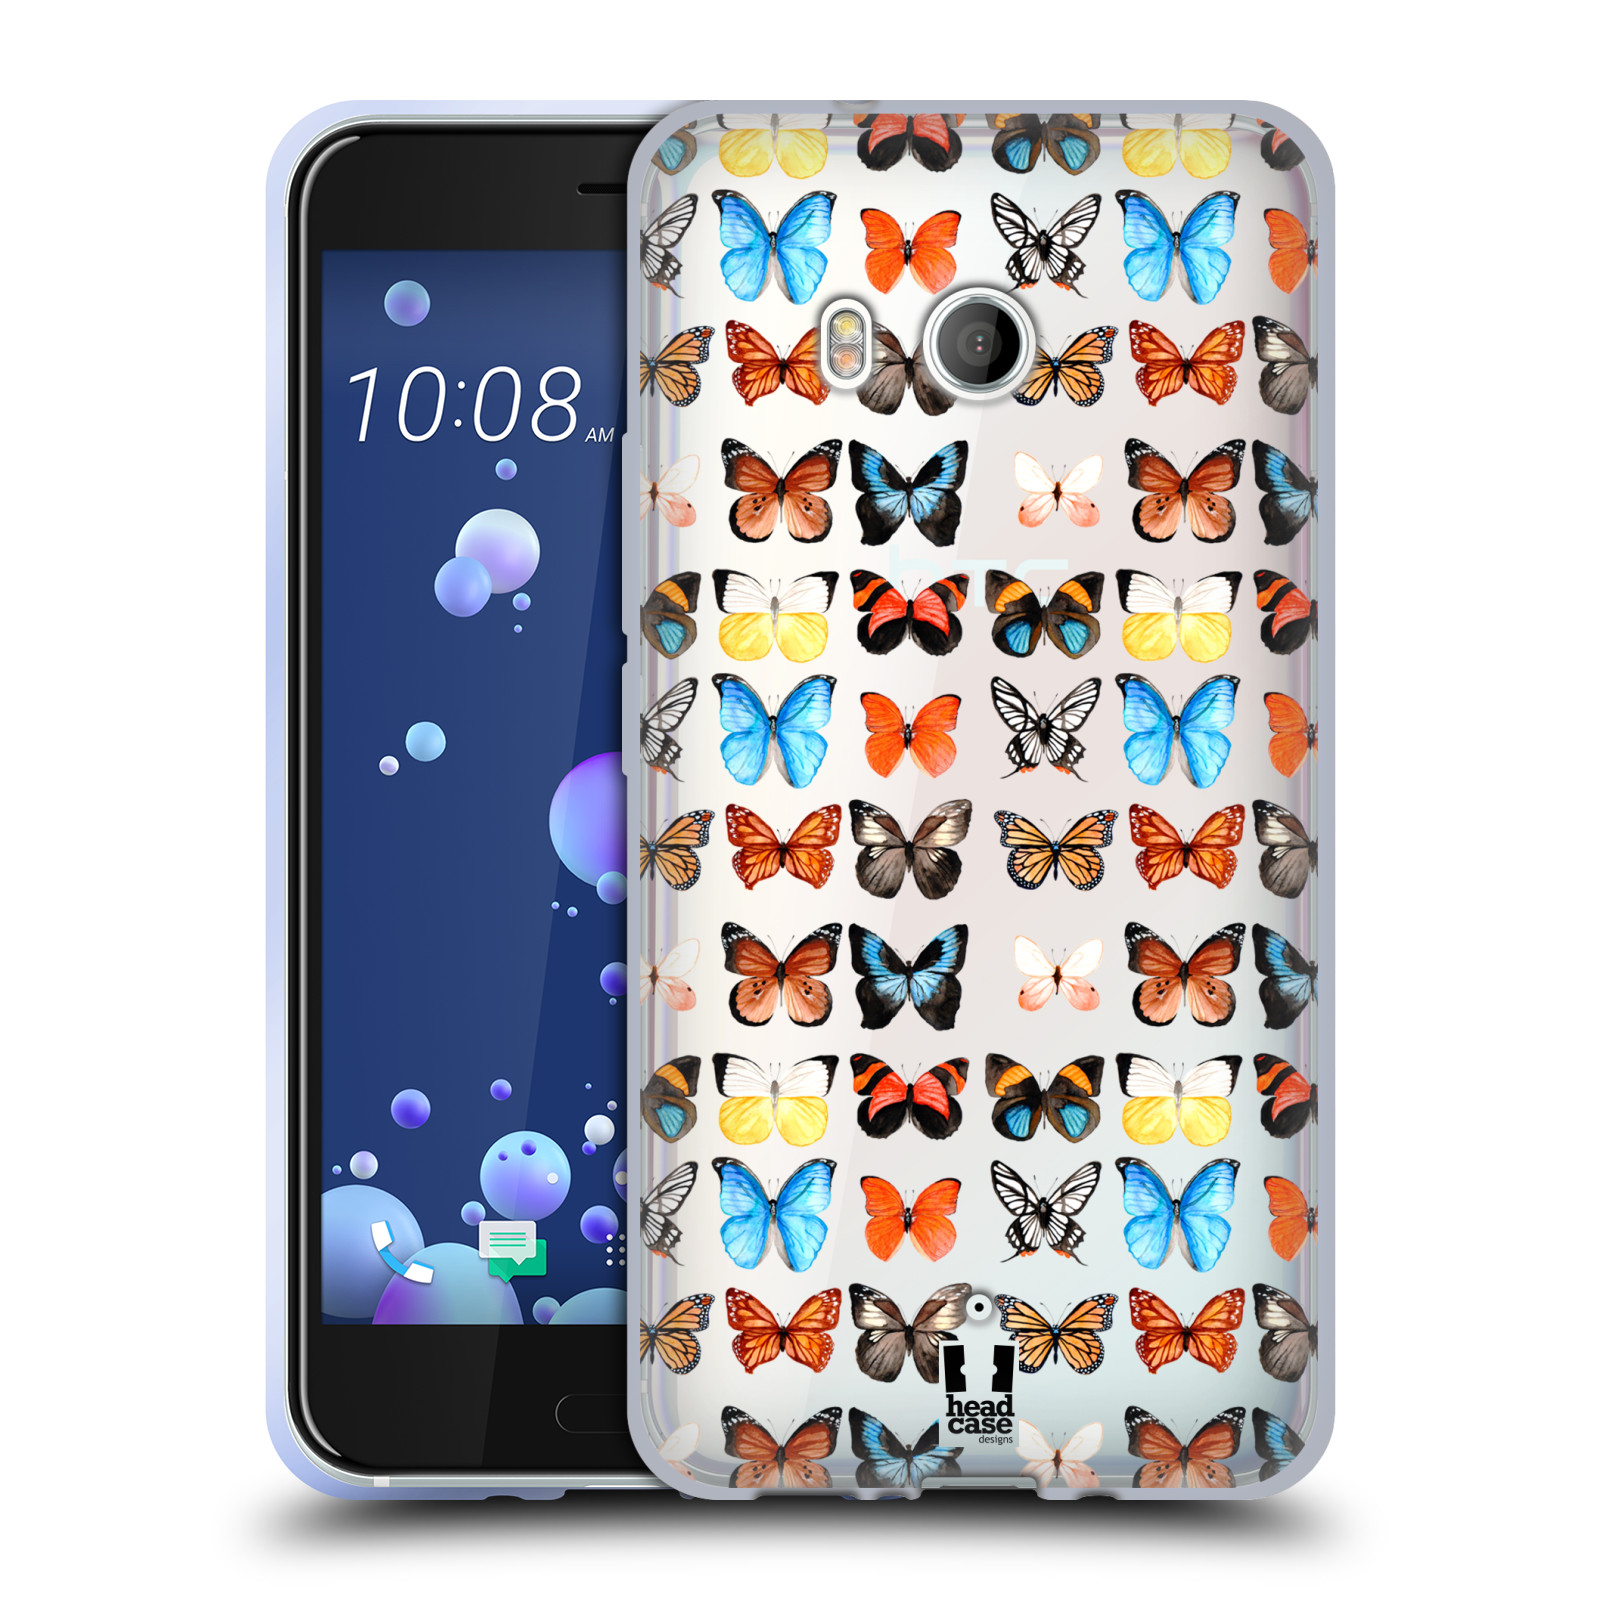 HEAD-CASE-DESIGNS-BUTTERFLY-PARADISE-SOFT-GEL-CASE-FOR-HTC-PHONES-1